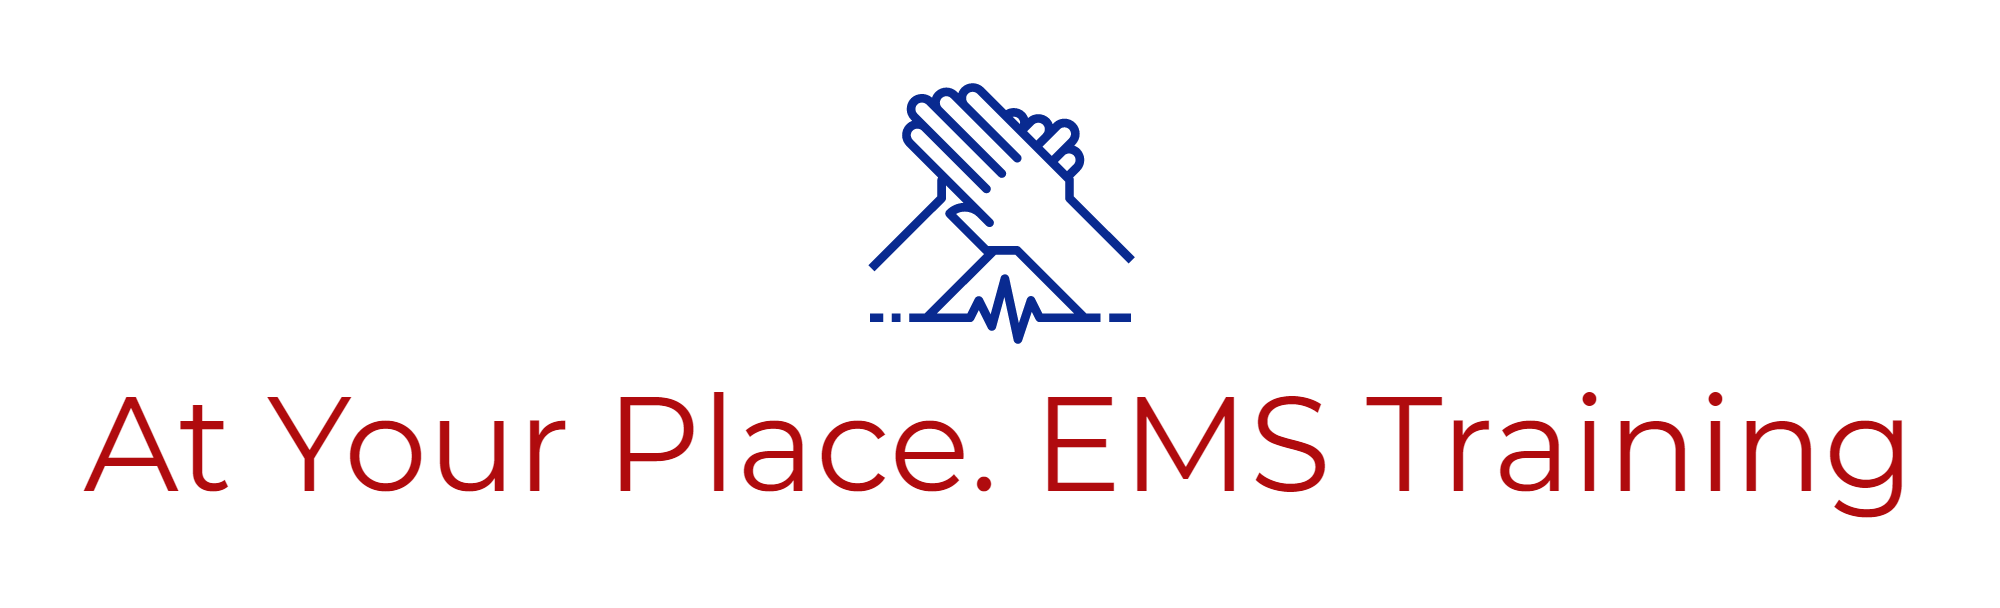 At Your Place. EMS Training-logo.png